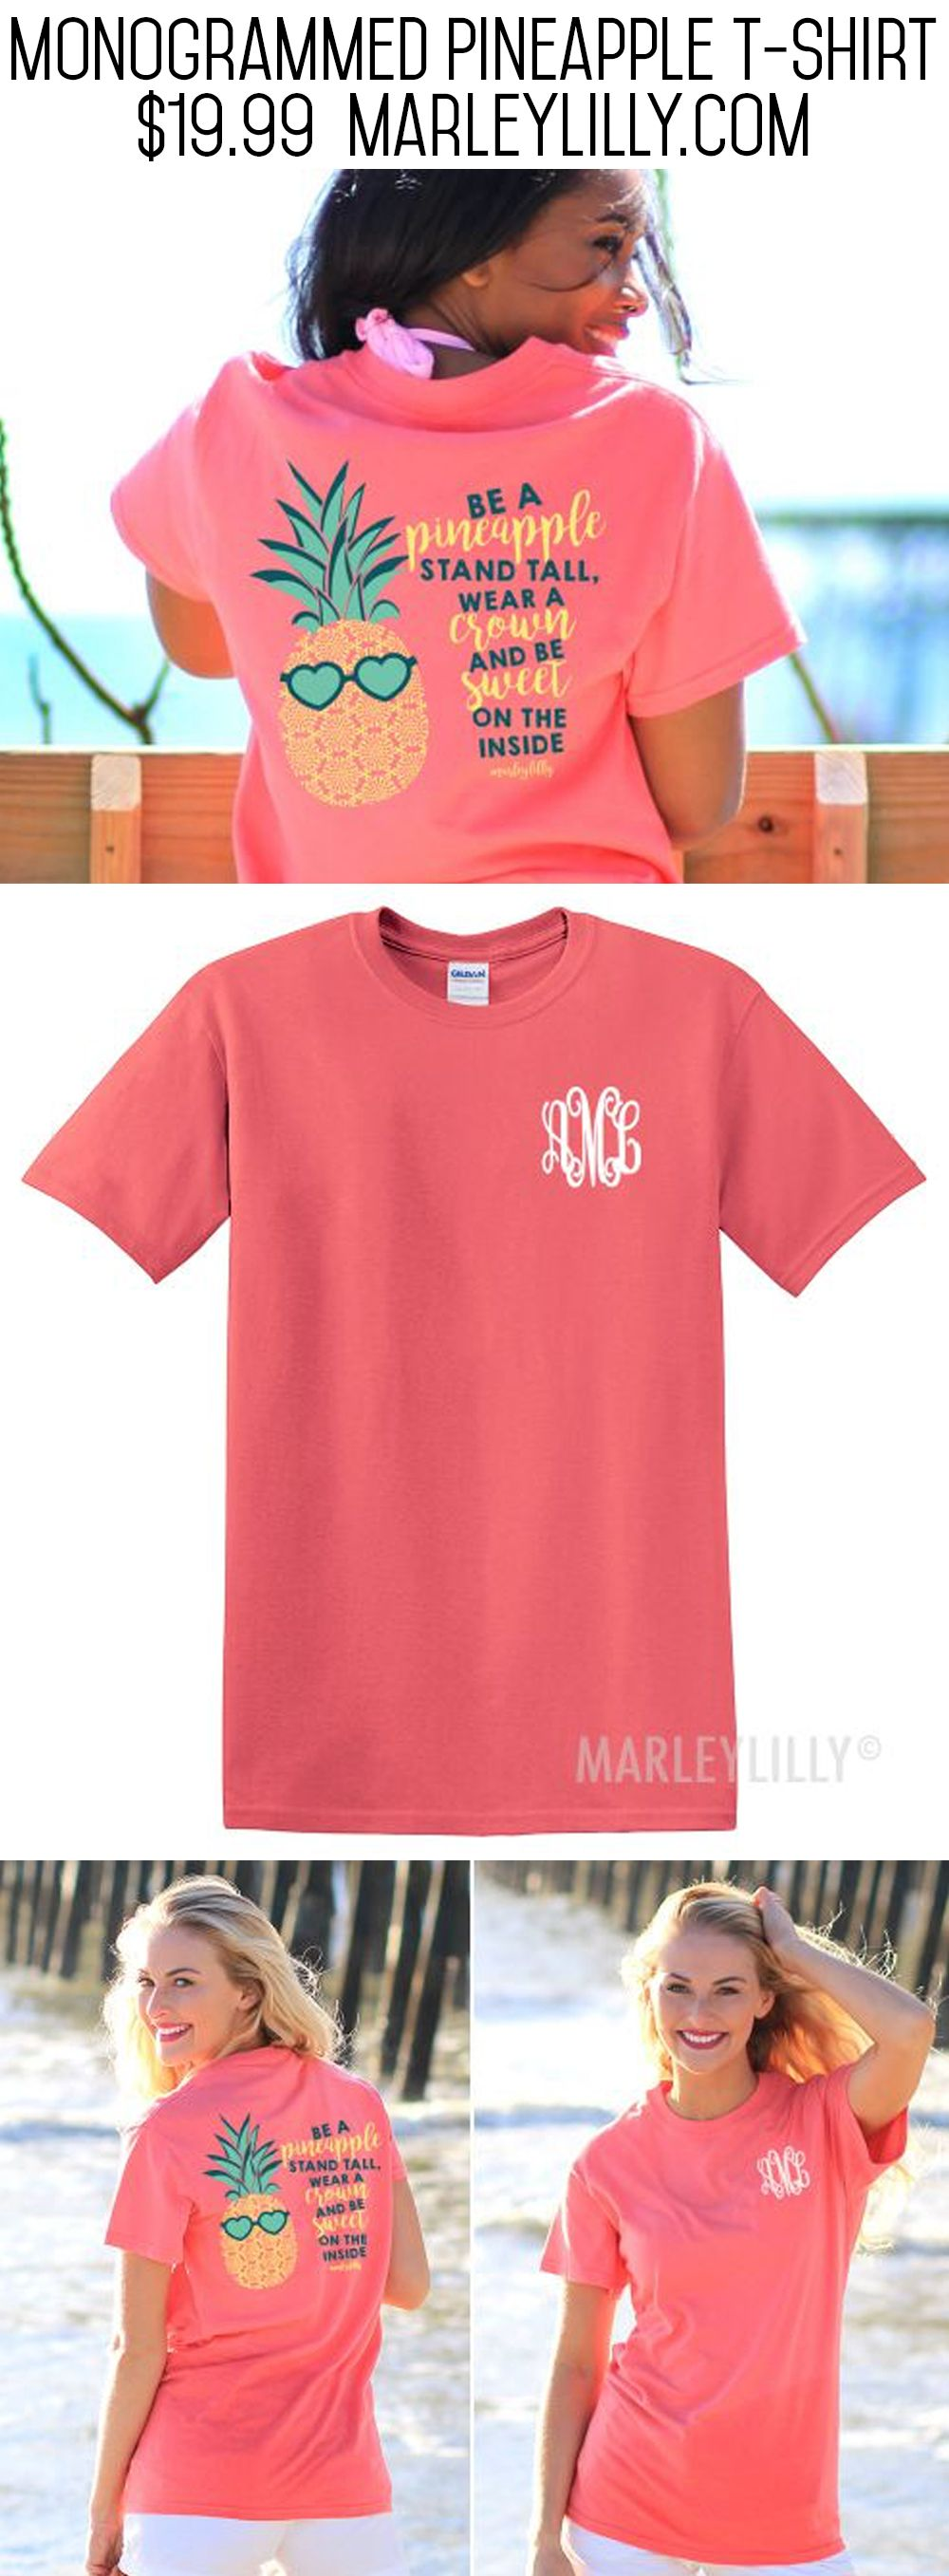 Design your own t shirt virtual - Get This Monogrammed Pineapple T Shirt While You Can Before They Are